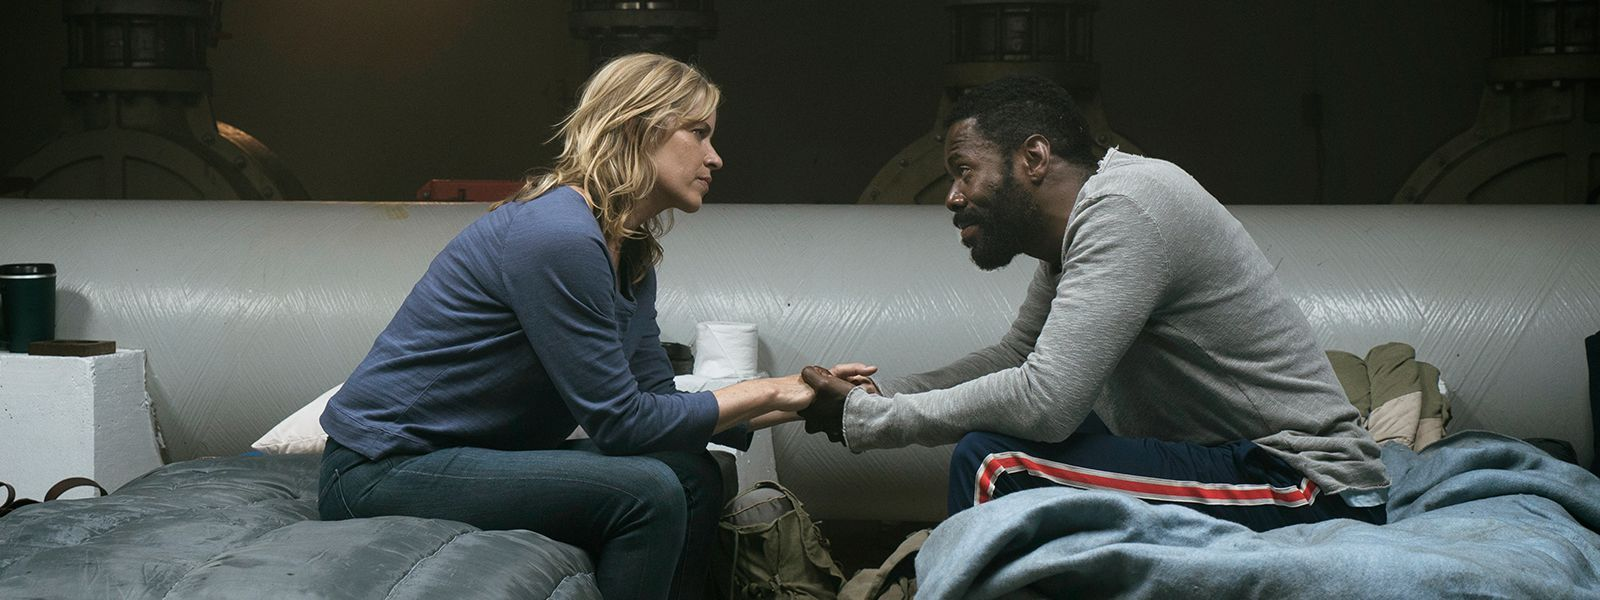 fear-the-walking-dead-episode-311-madison-dickens-strand-domingo-post-800×600